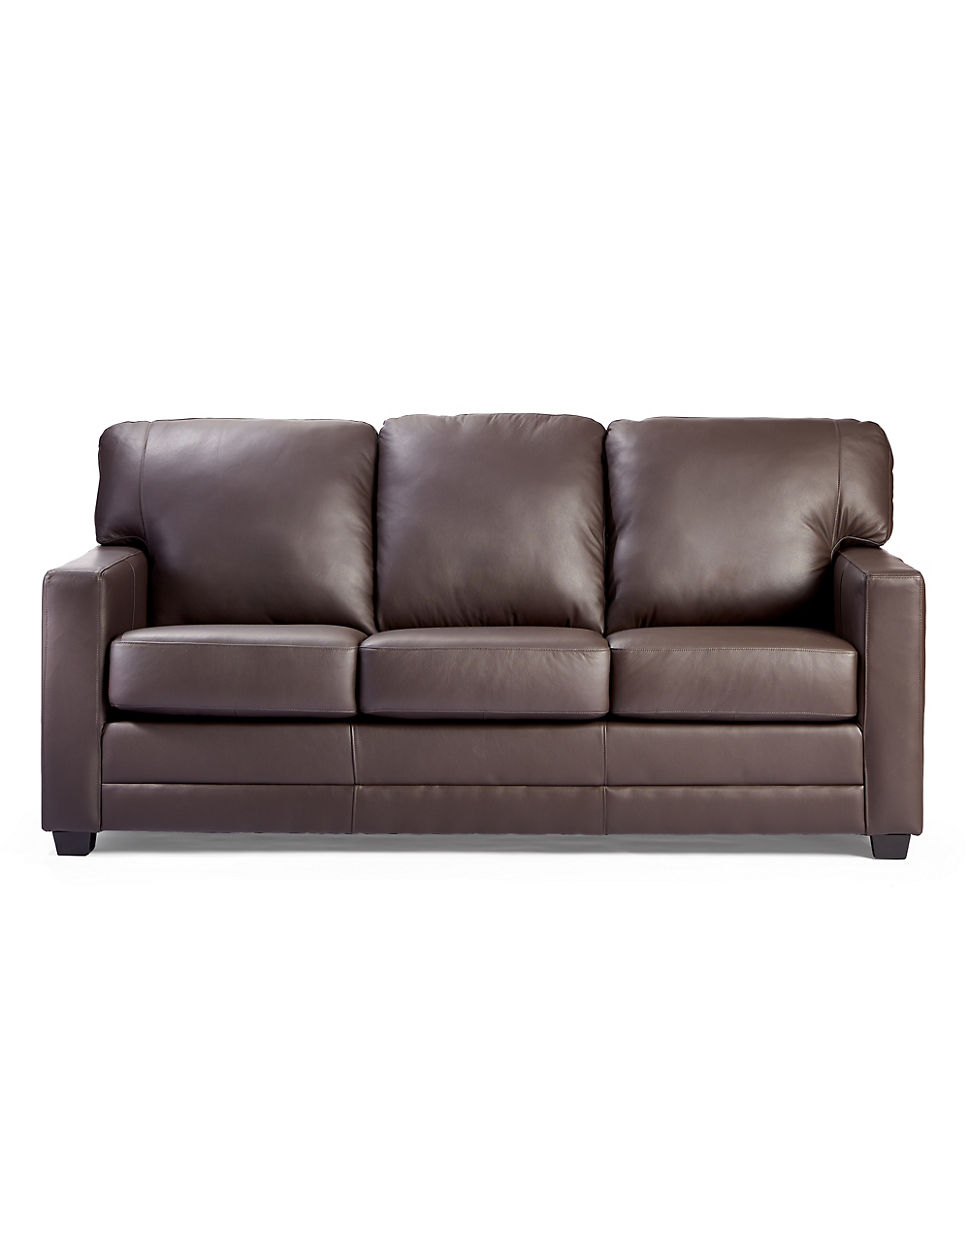 Lake como leather sofa reviews sofa review for Furniture 7 reviews